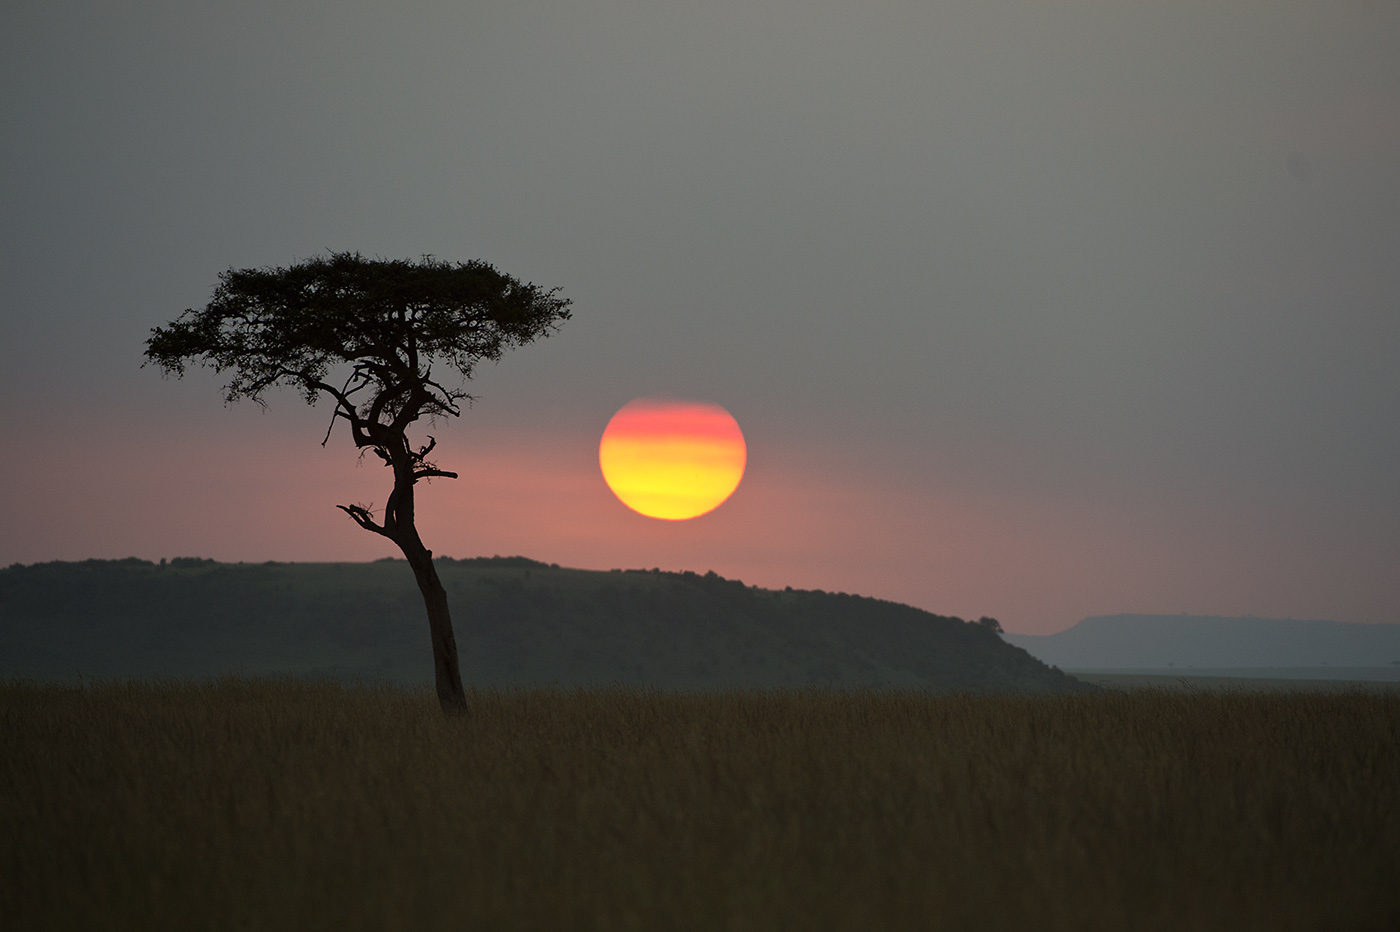 Sunset in der Masai Mara